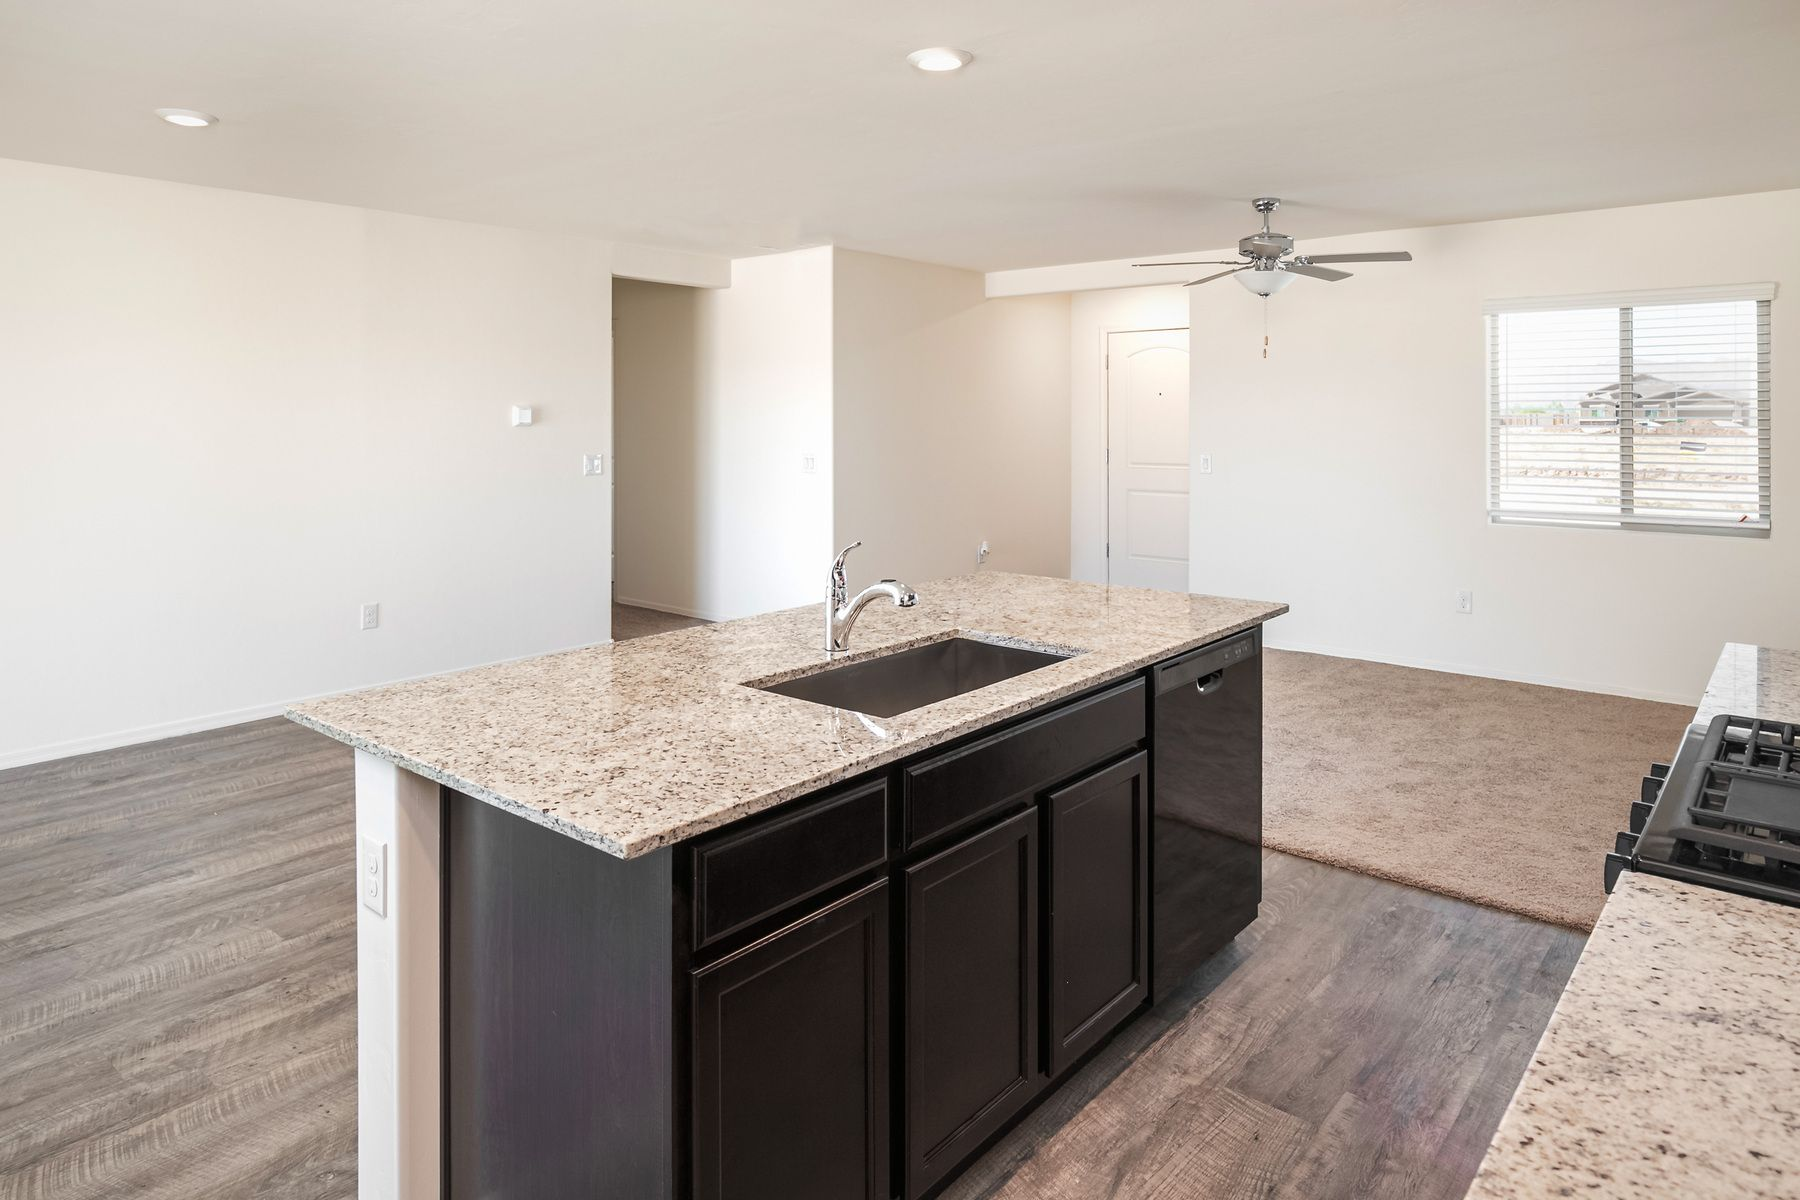 Kitchen featured in the Alamo By LGI Homes in Tucson, AZ